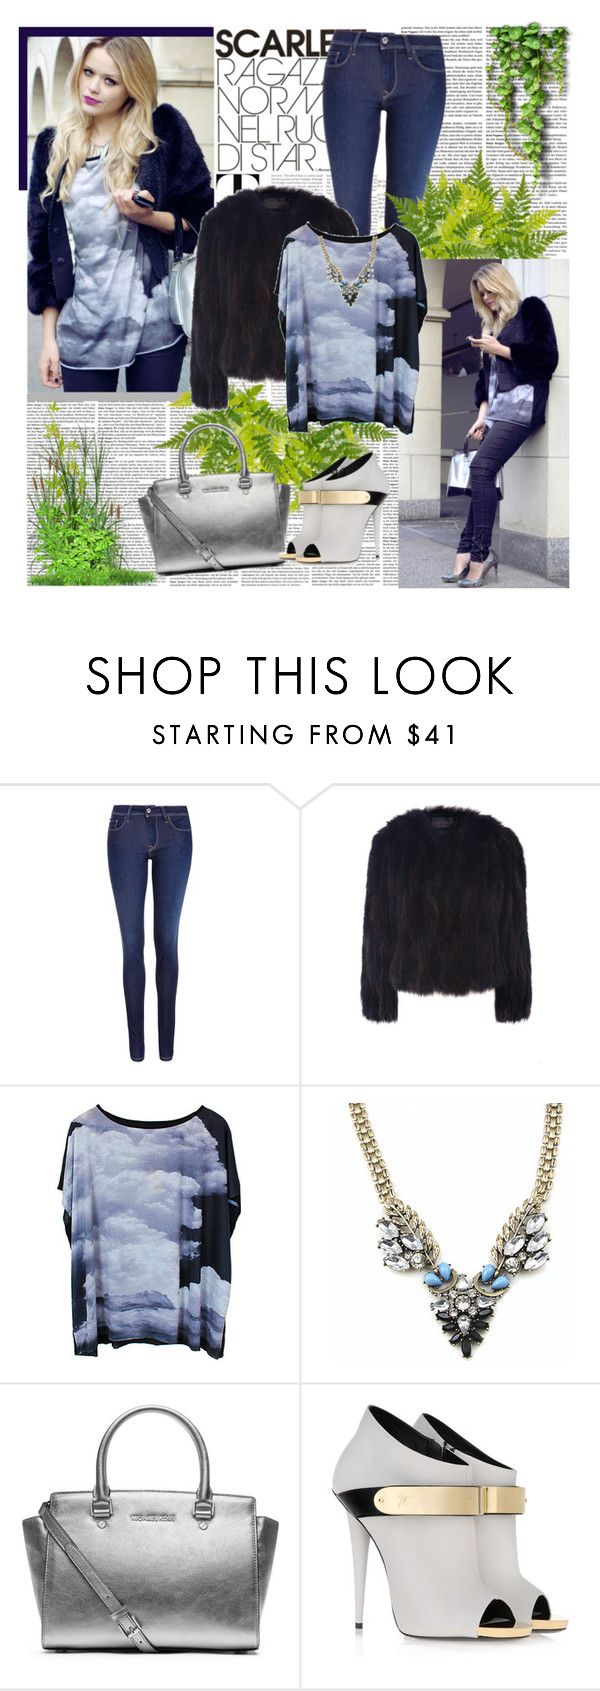 """""""Faux fur coat"""" by amaci ❤ liked on Polyvore featuring Salsa, Dolce&Gabbana, Hockley, MICHAEL Michael Kors, Giuseppe Zanotti and SCARLETT"""